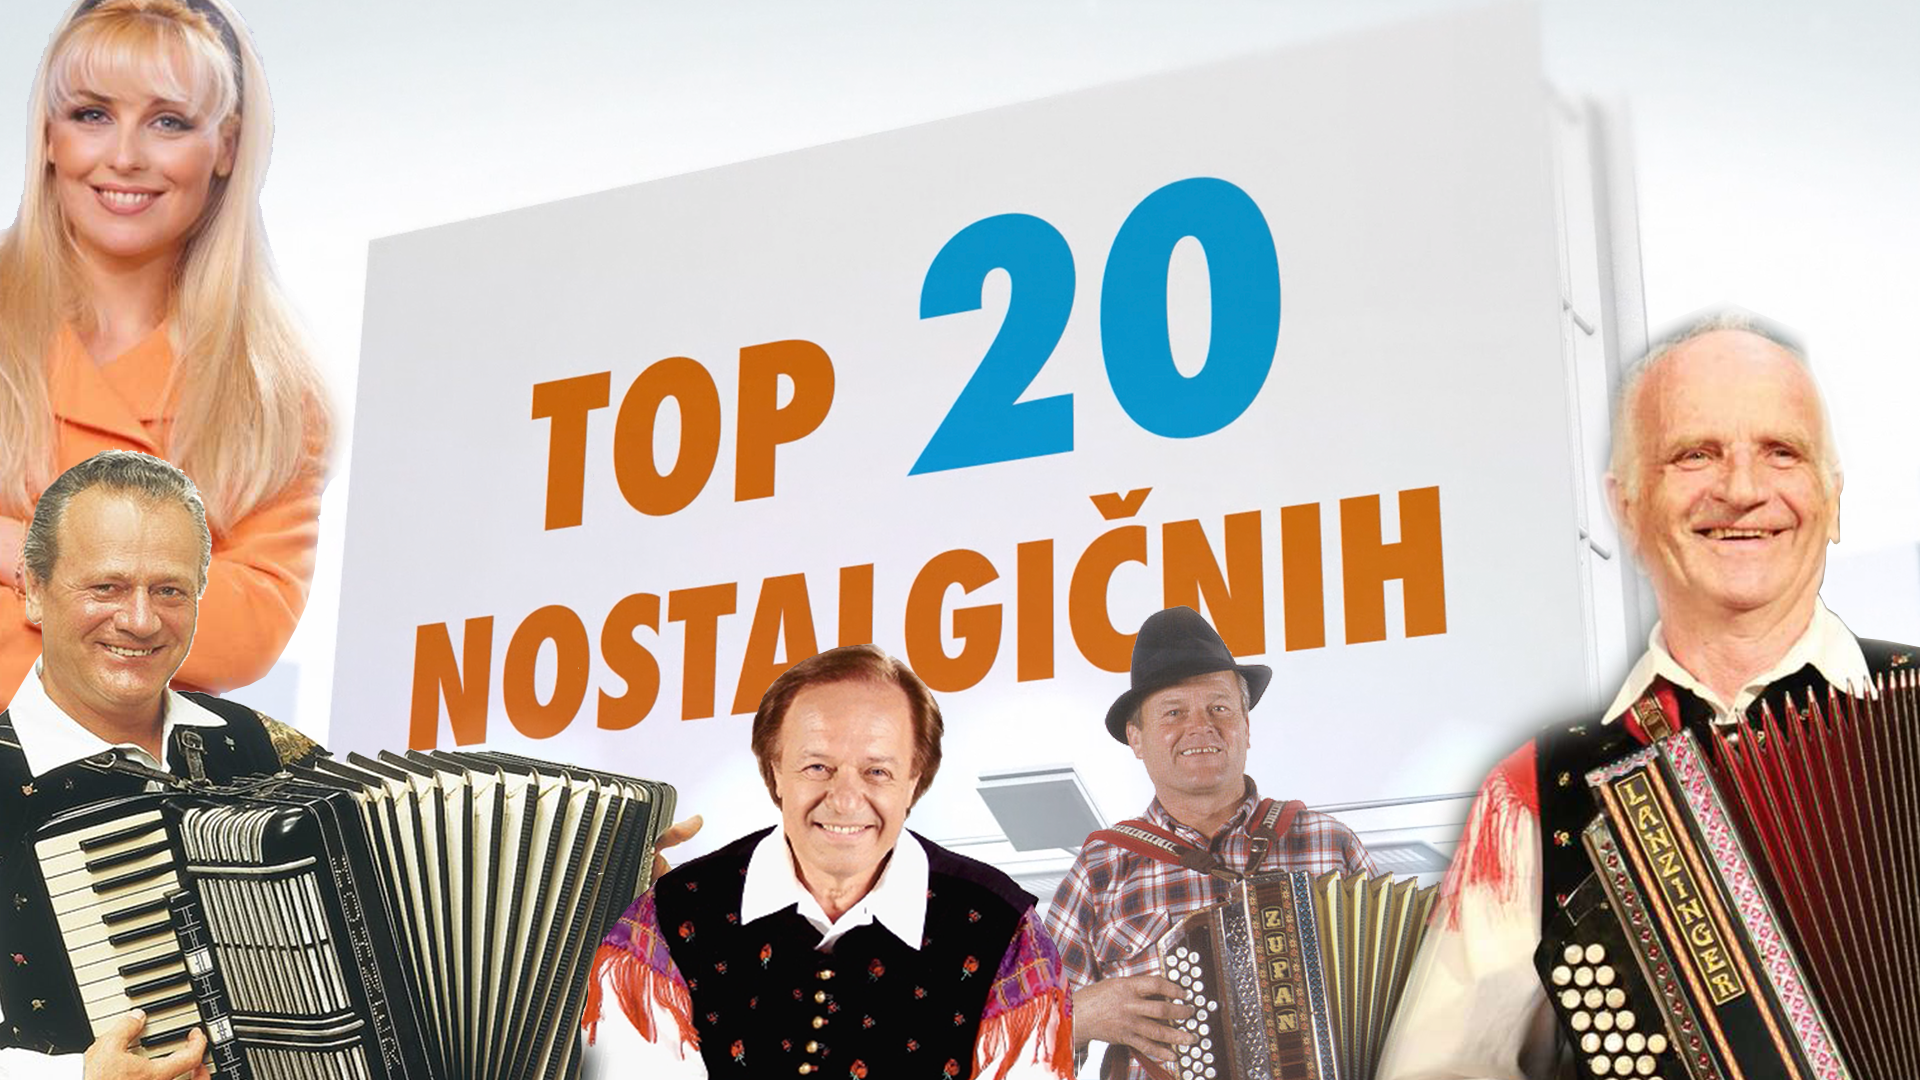 TOP20_nostalgičnih_HEADER